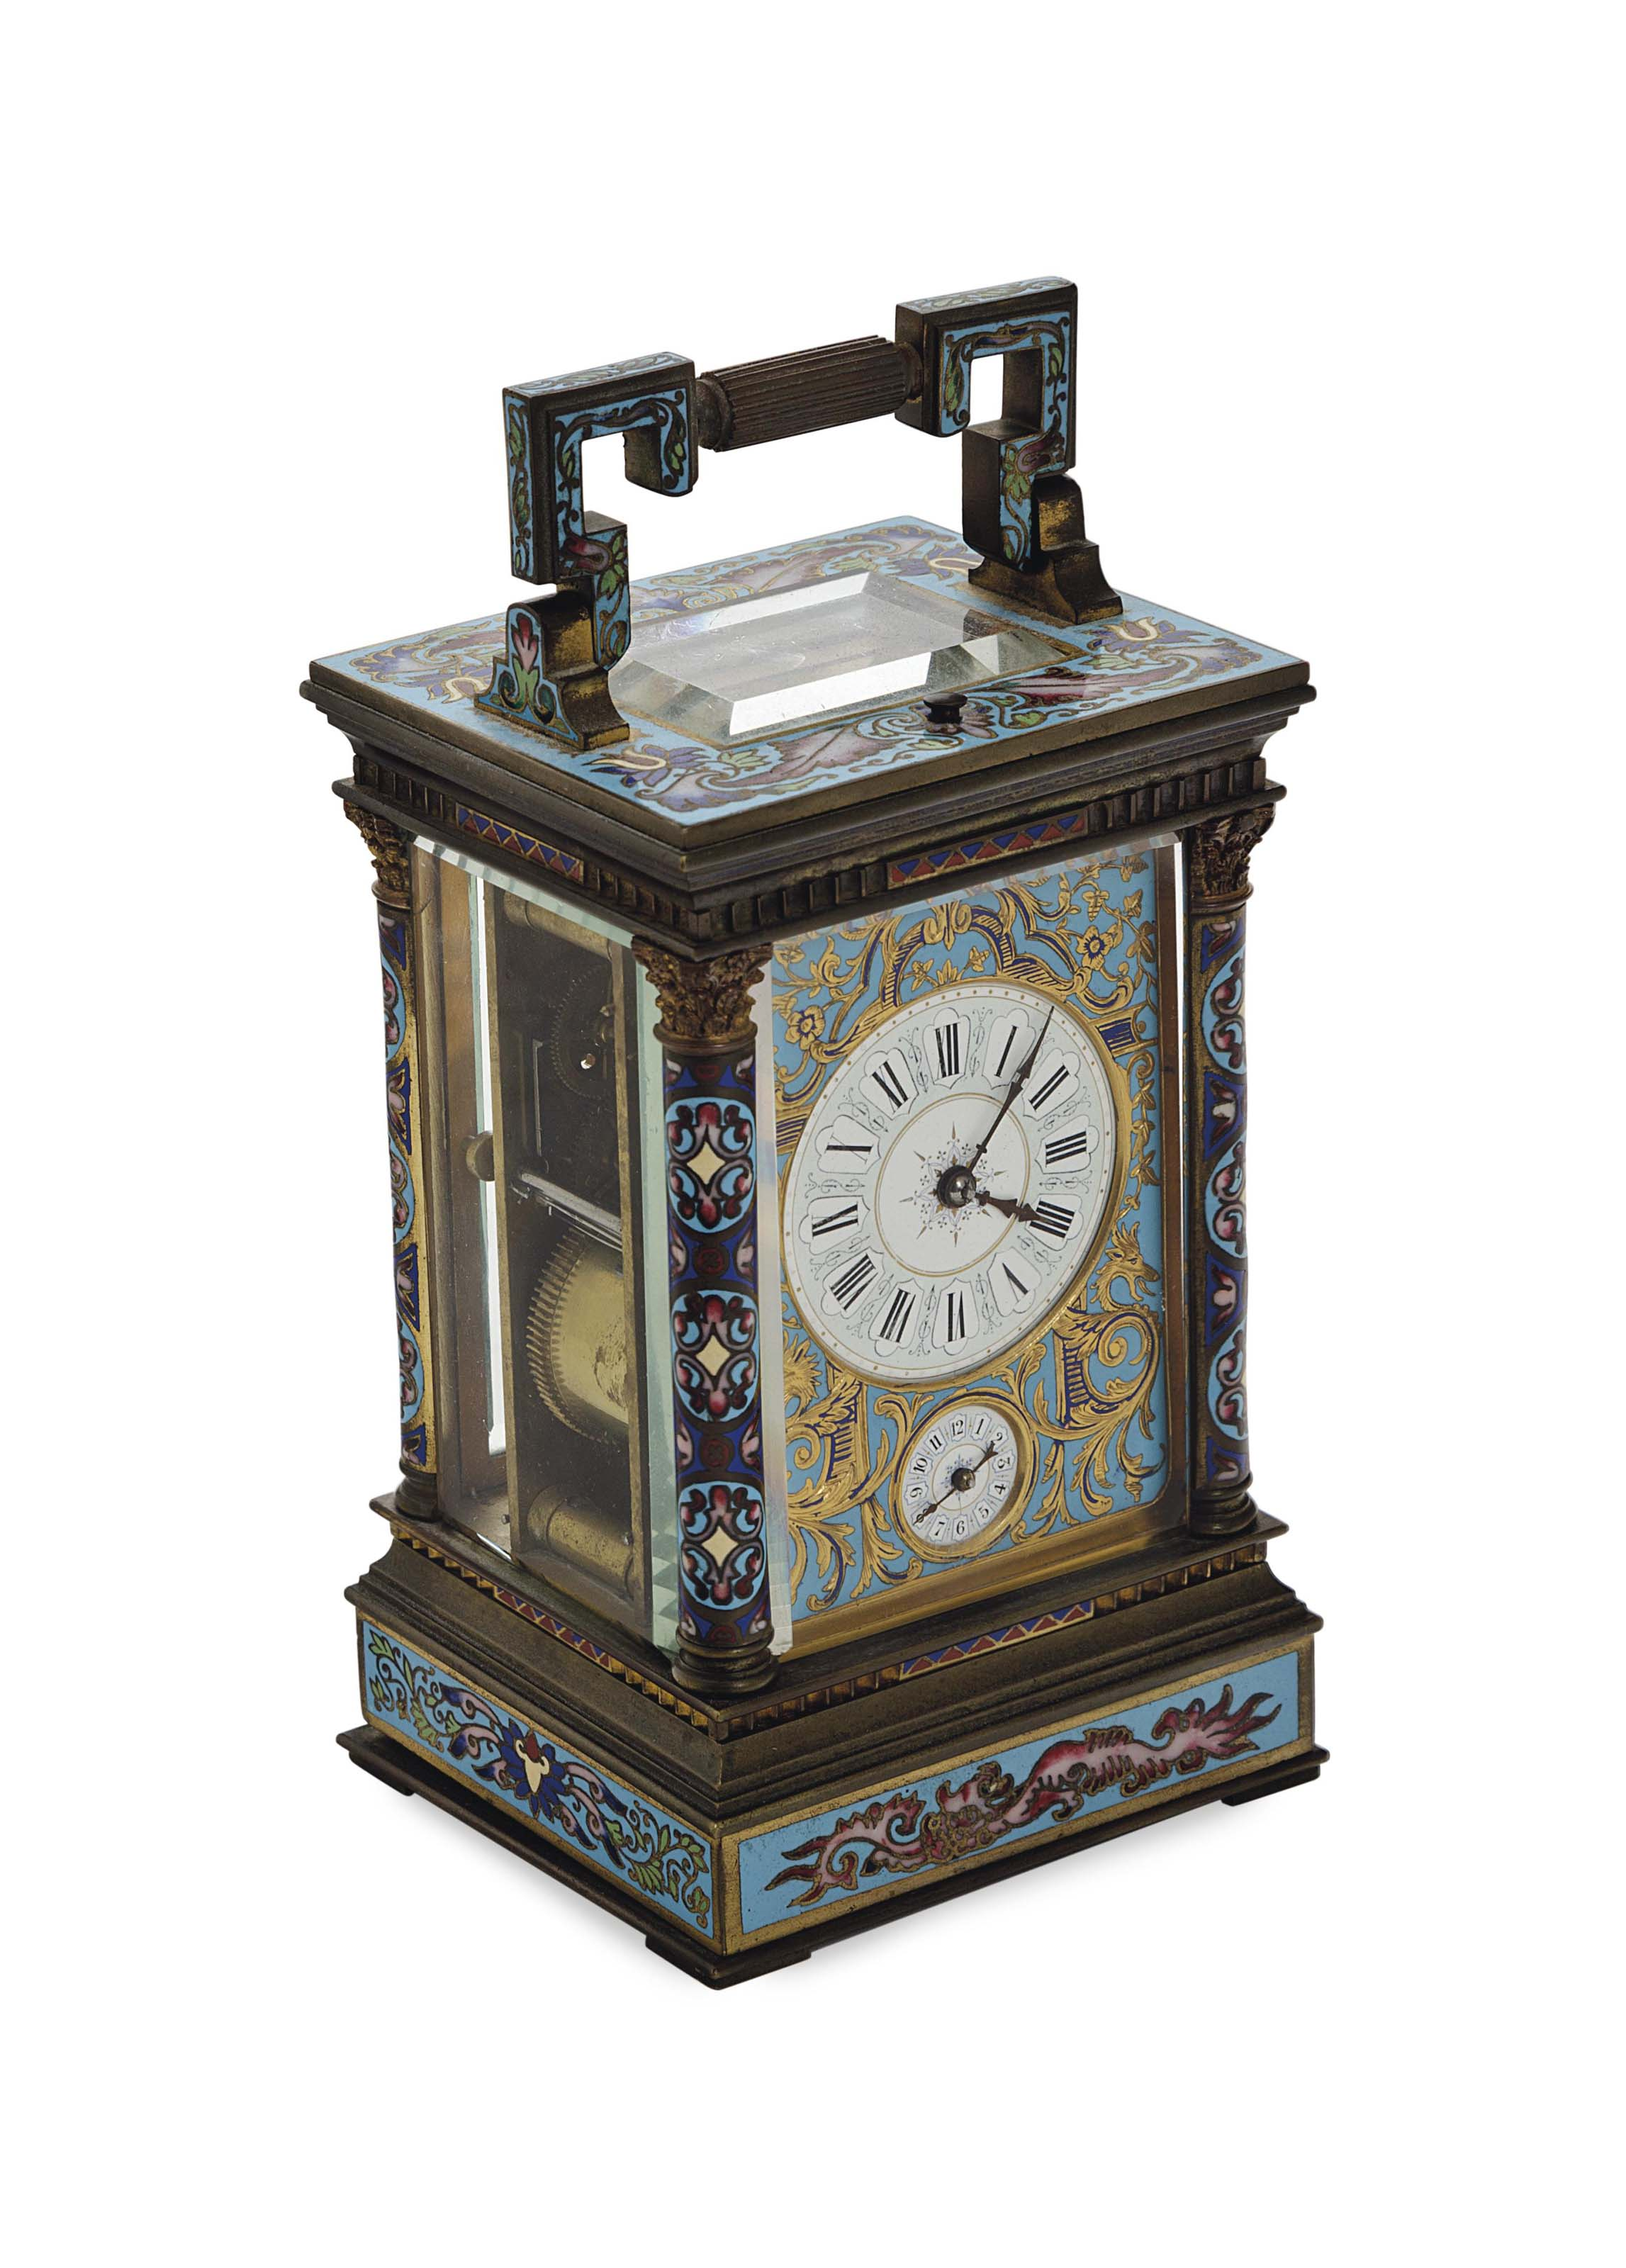 A FRENCH ORMOLU AND CLOISONNE ENAMEL CARRIAGE CLOCK,